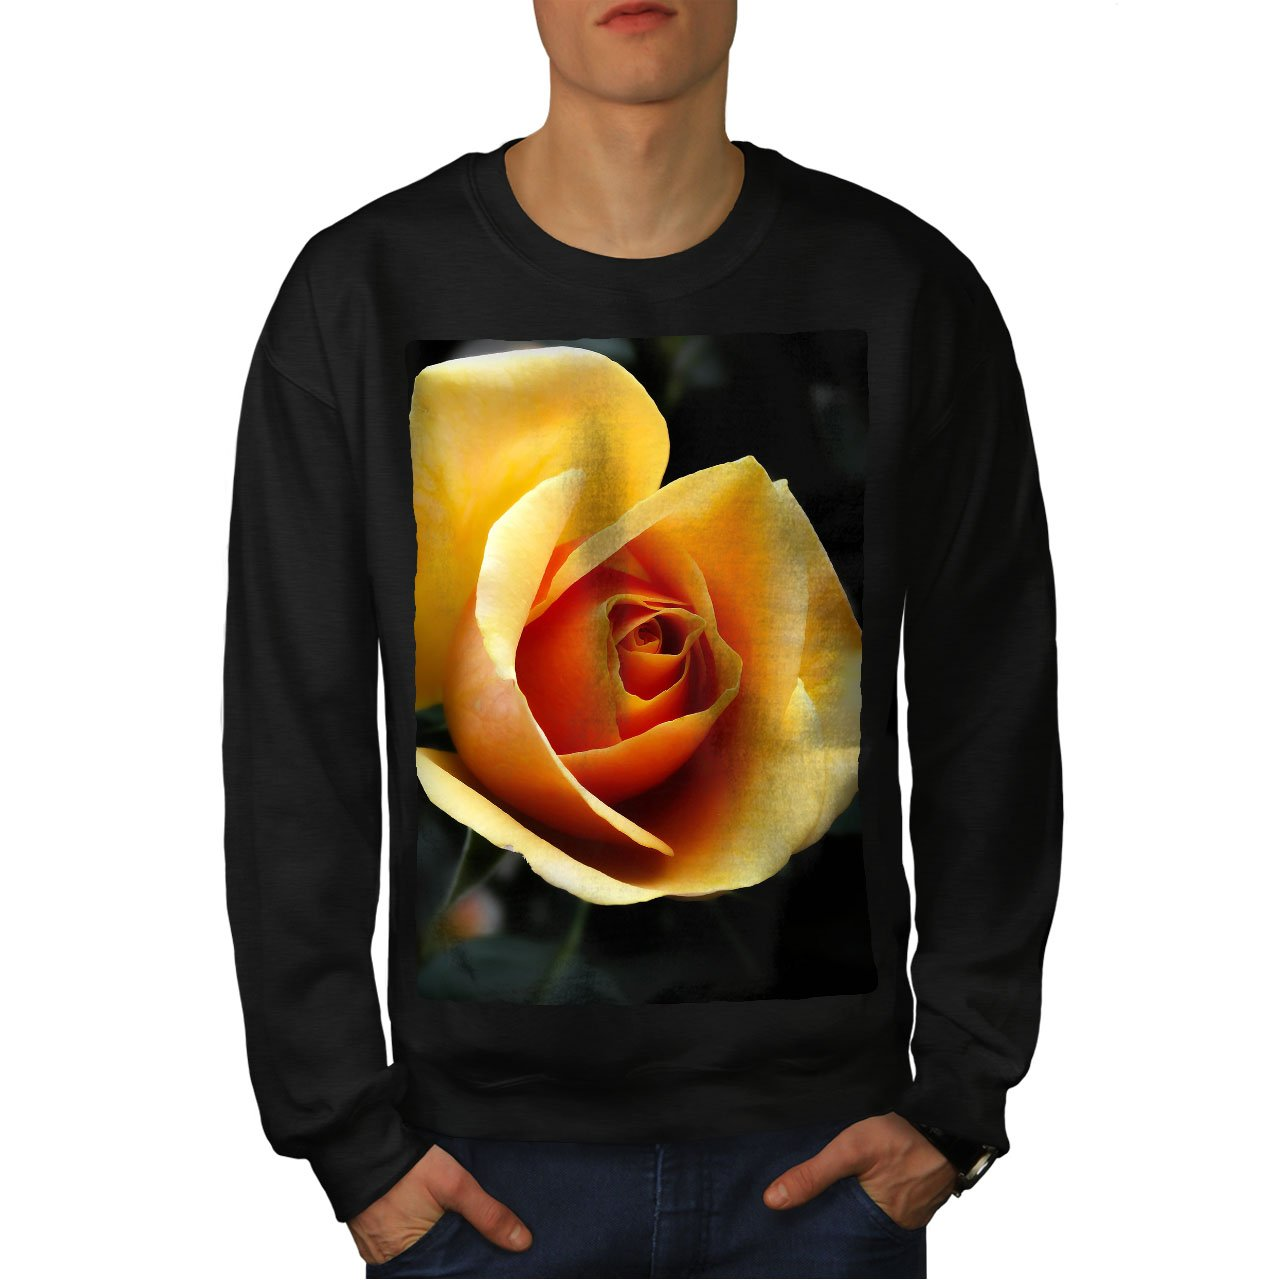 wellcoda Yellow Rose Photo Mens Sweatshirt Flower Casual Jumper